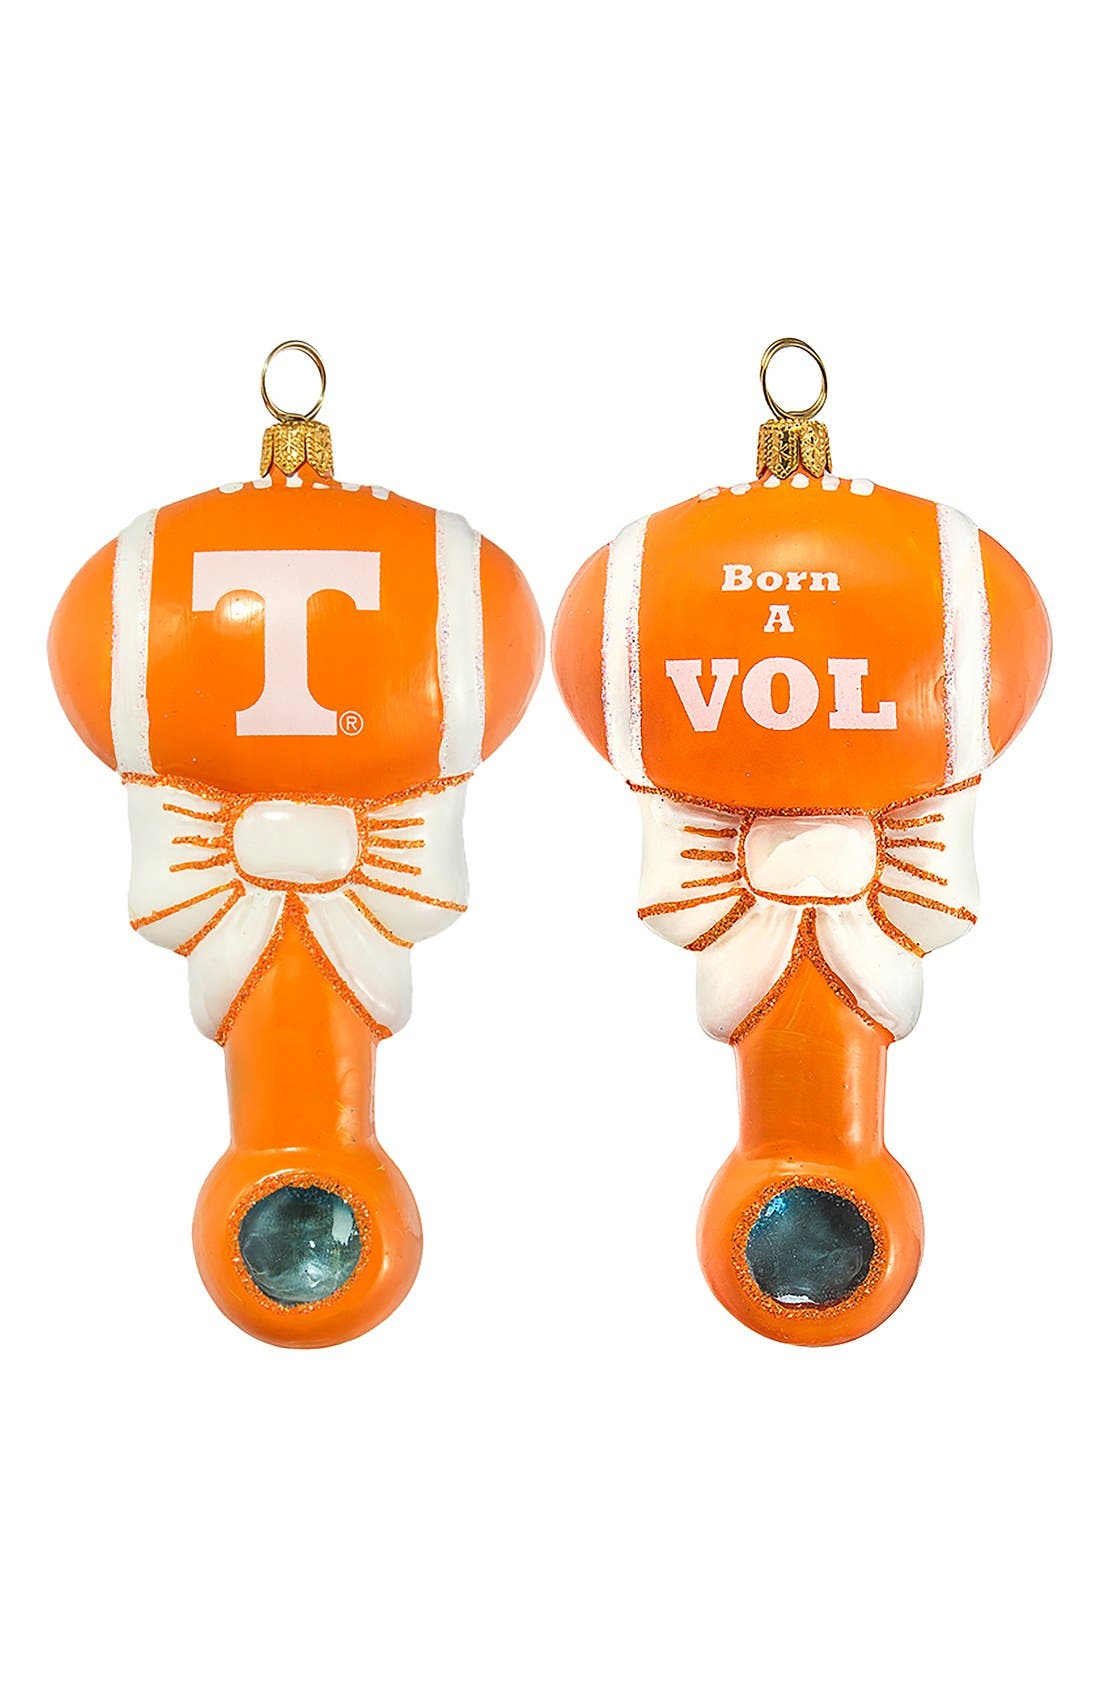 'Collegiate Baby Rattle' Ornament,                             Main thumbnail 1, color,                             Texas